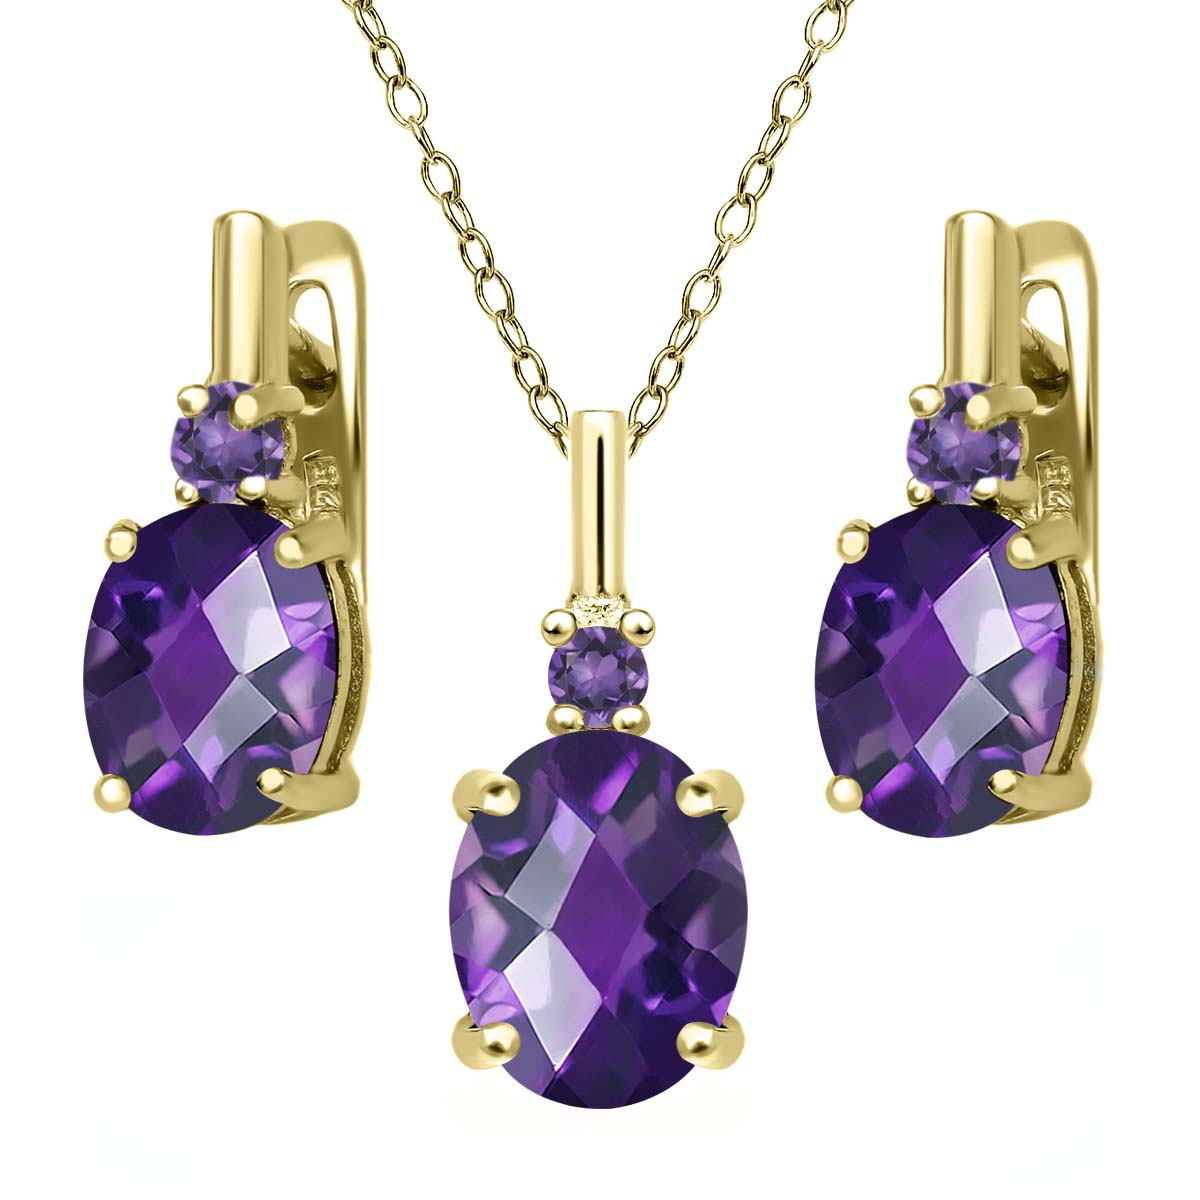 4.86 Ct Oval Checkerboard Purple Amethyst 18K Yellow Gold Plated Silver Pendant Earrings Set by